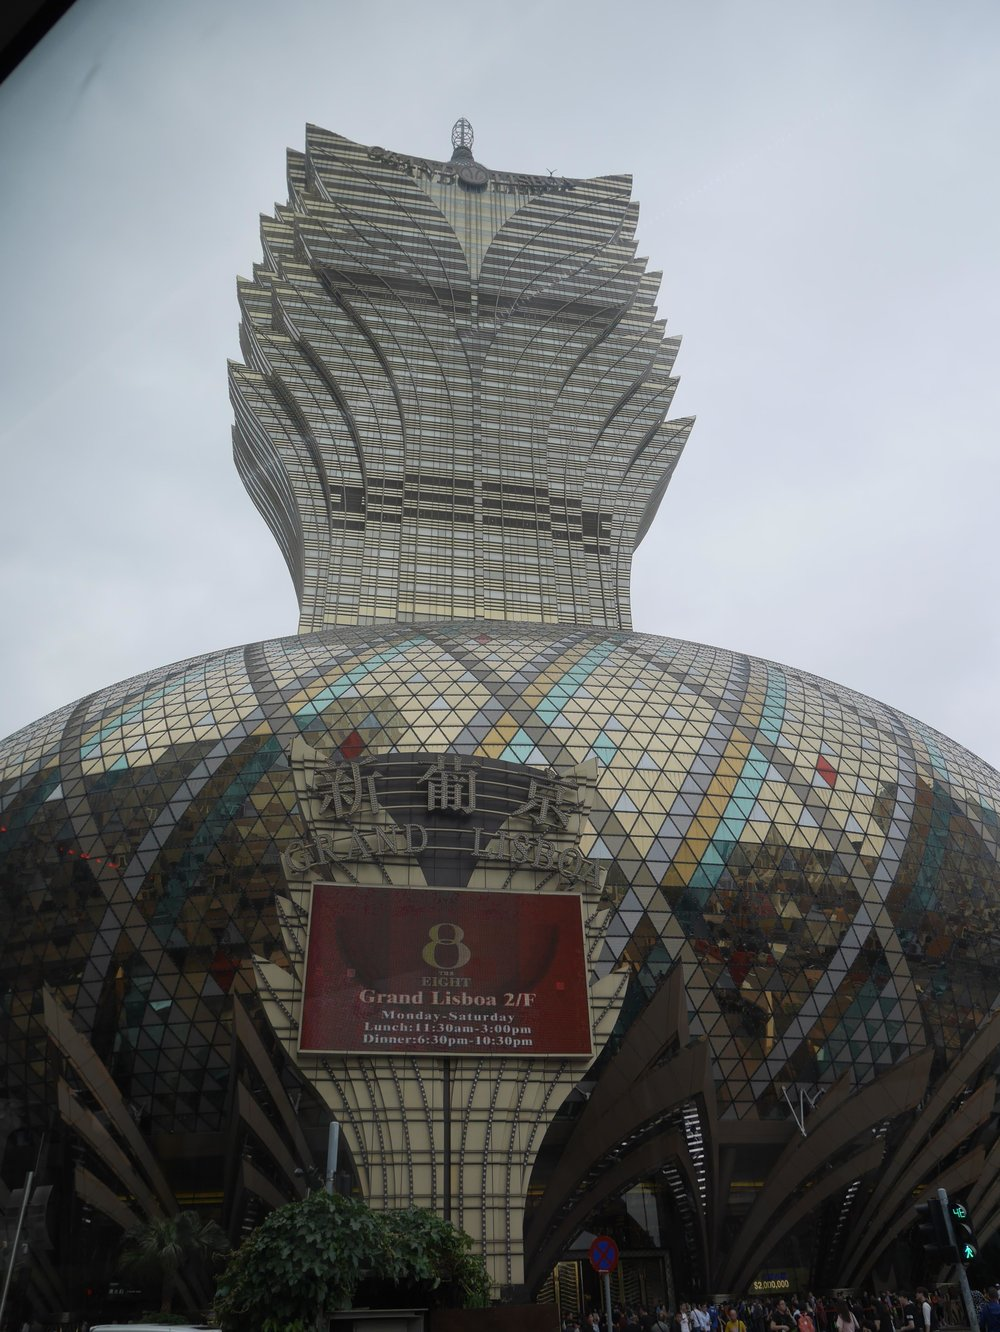 The Grand Lisboa is the tallest building in Macau